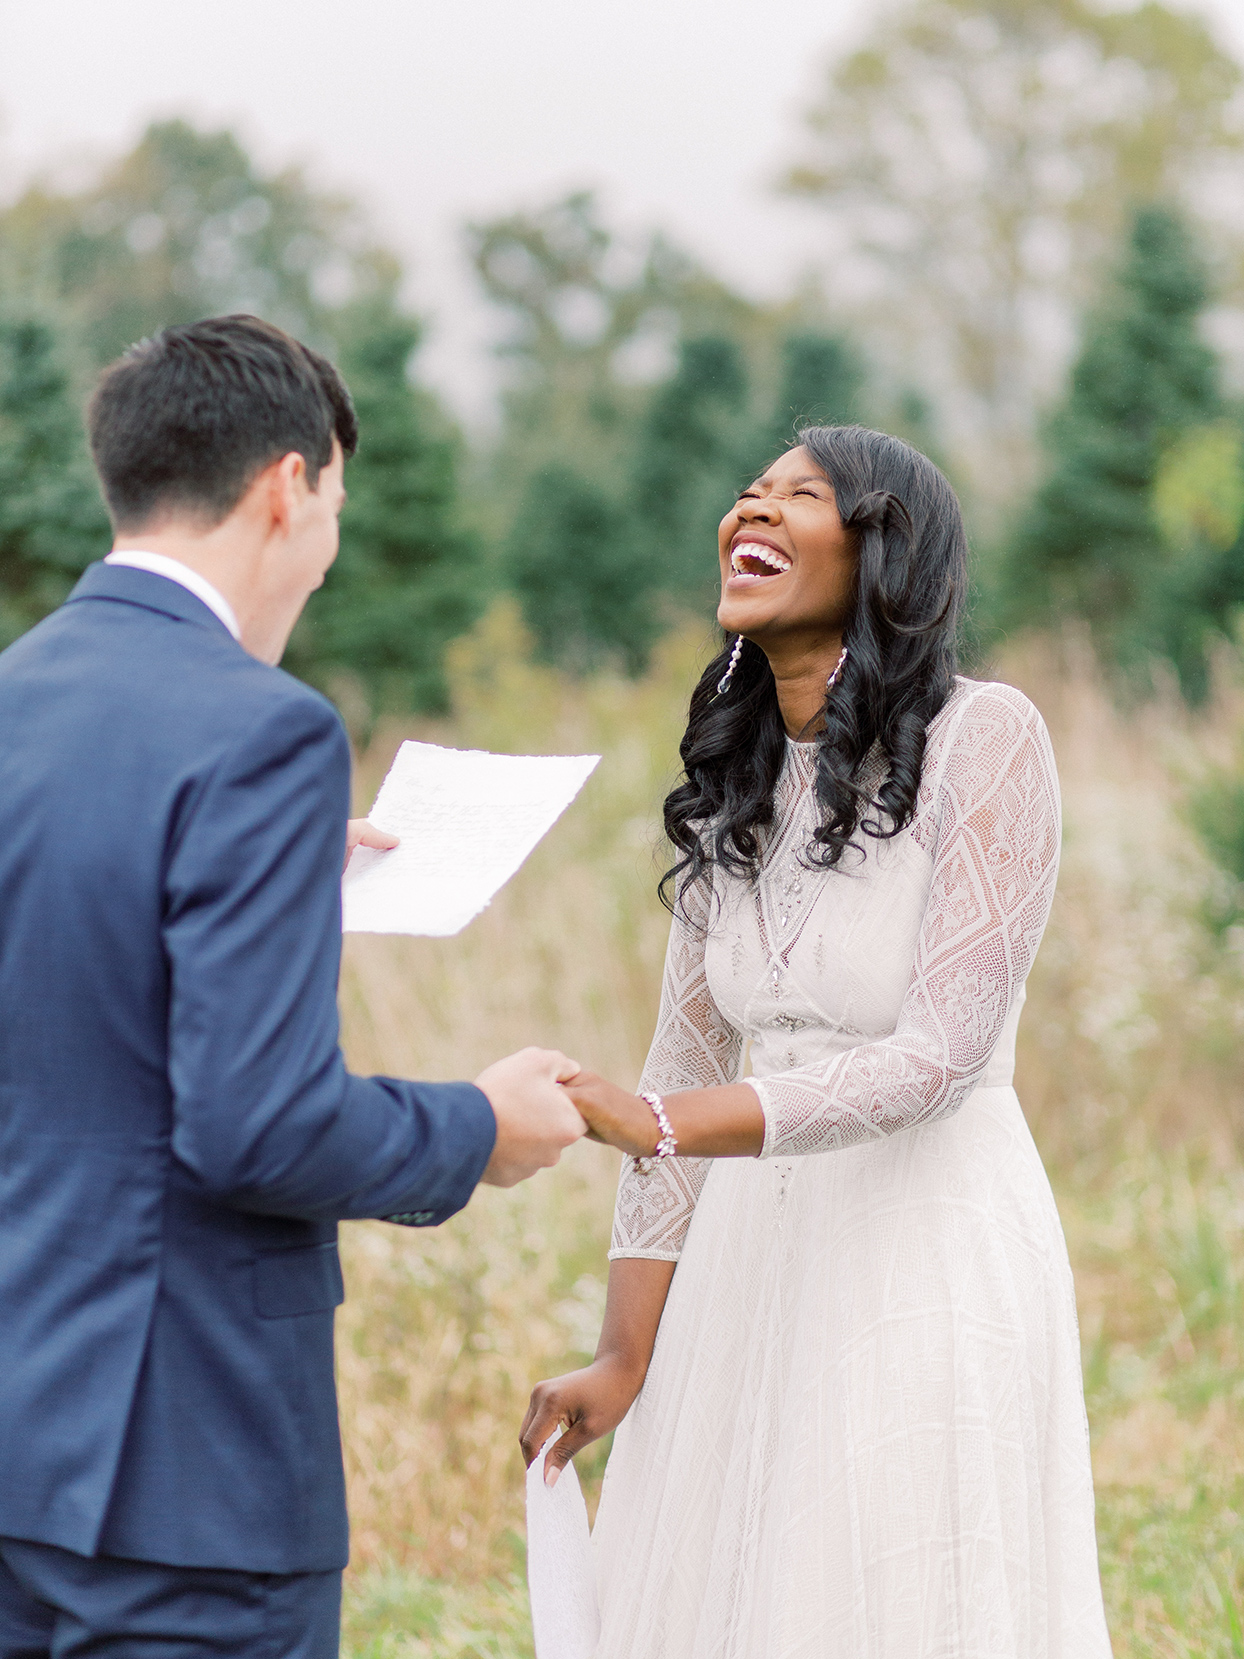 rebecca isaac wedding personal vows bride laughing